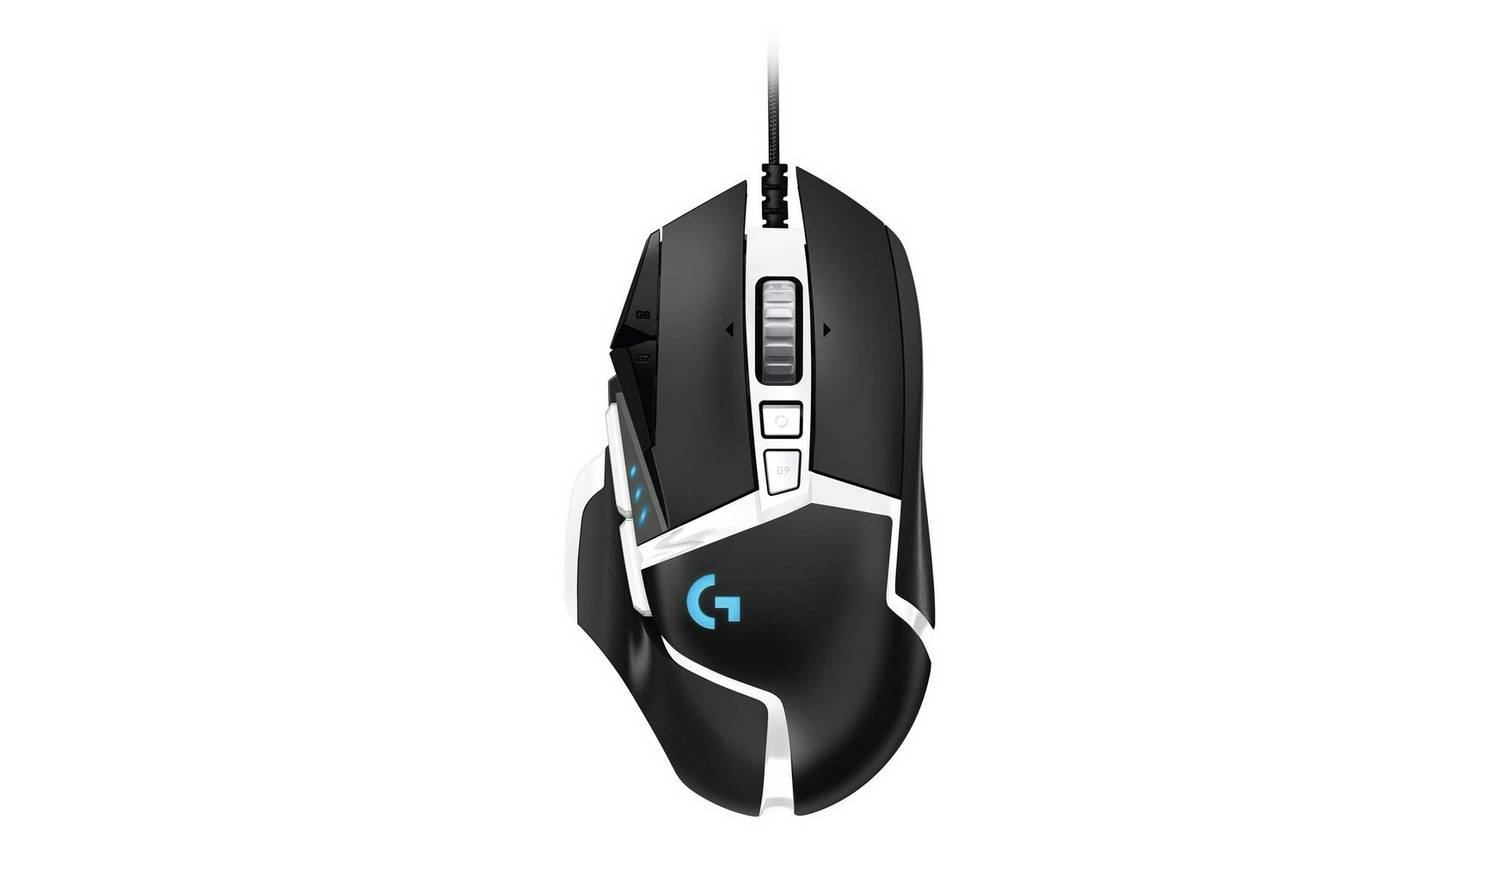 Logitech G502 Special Edition Hero Mouse - Multicoloured